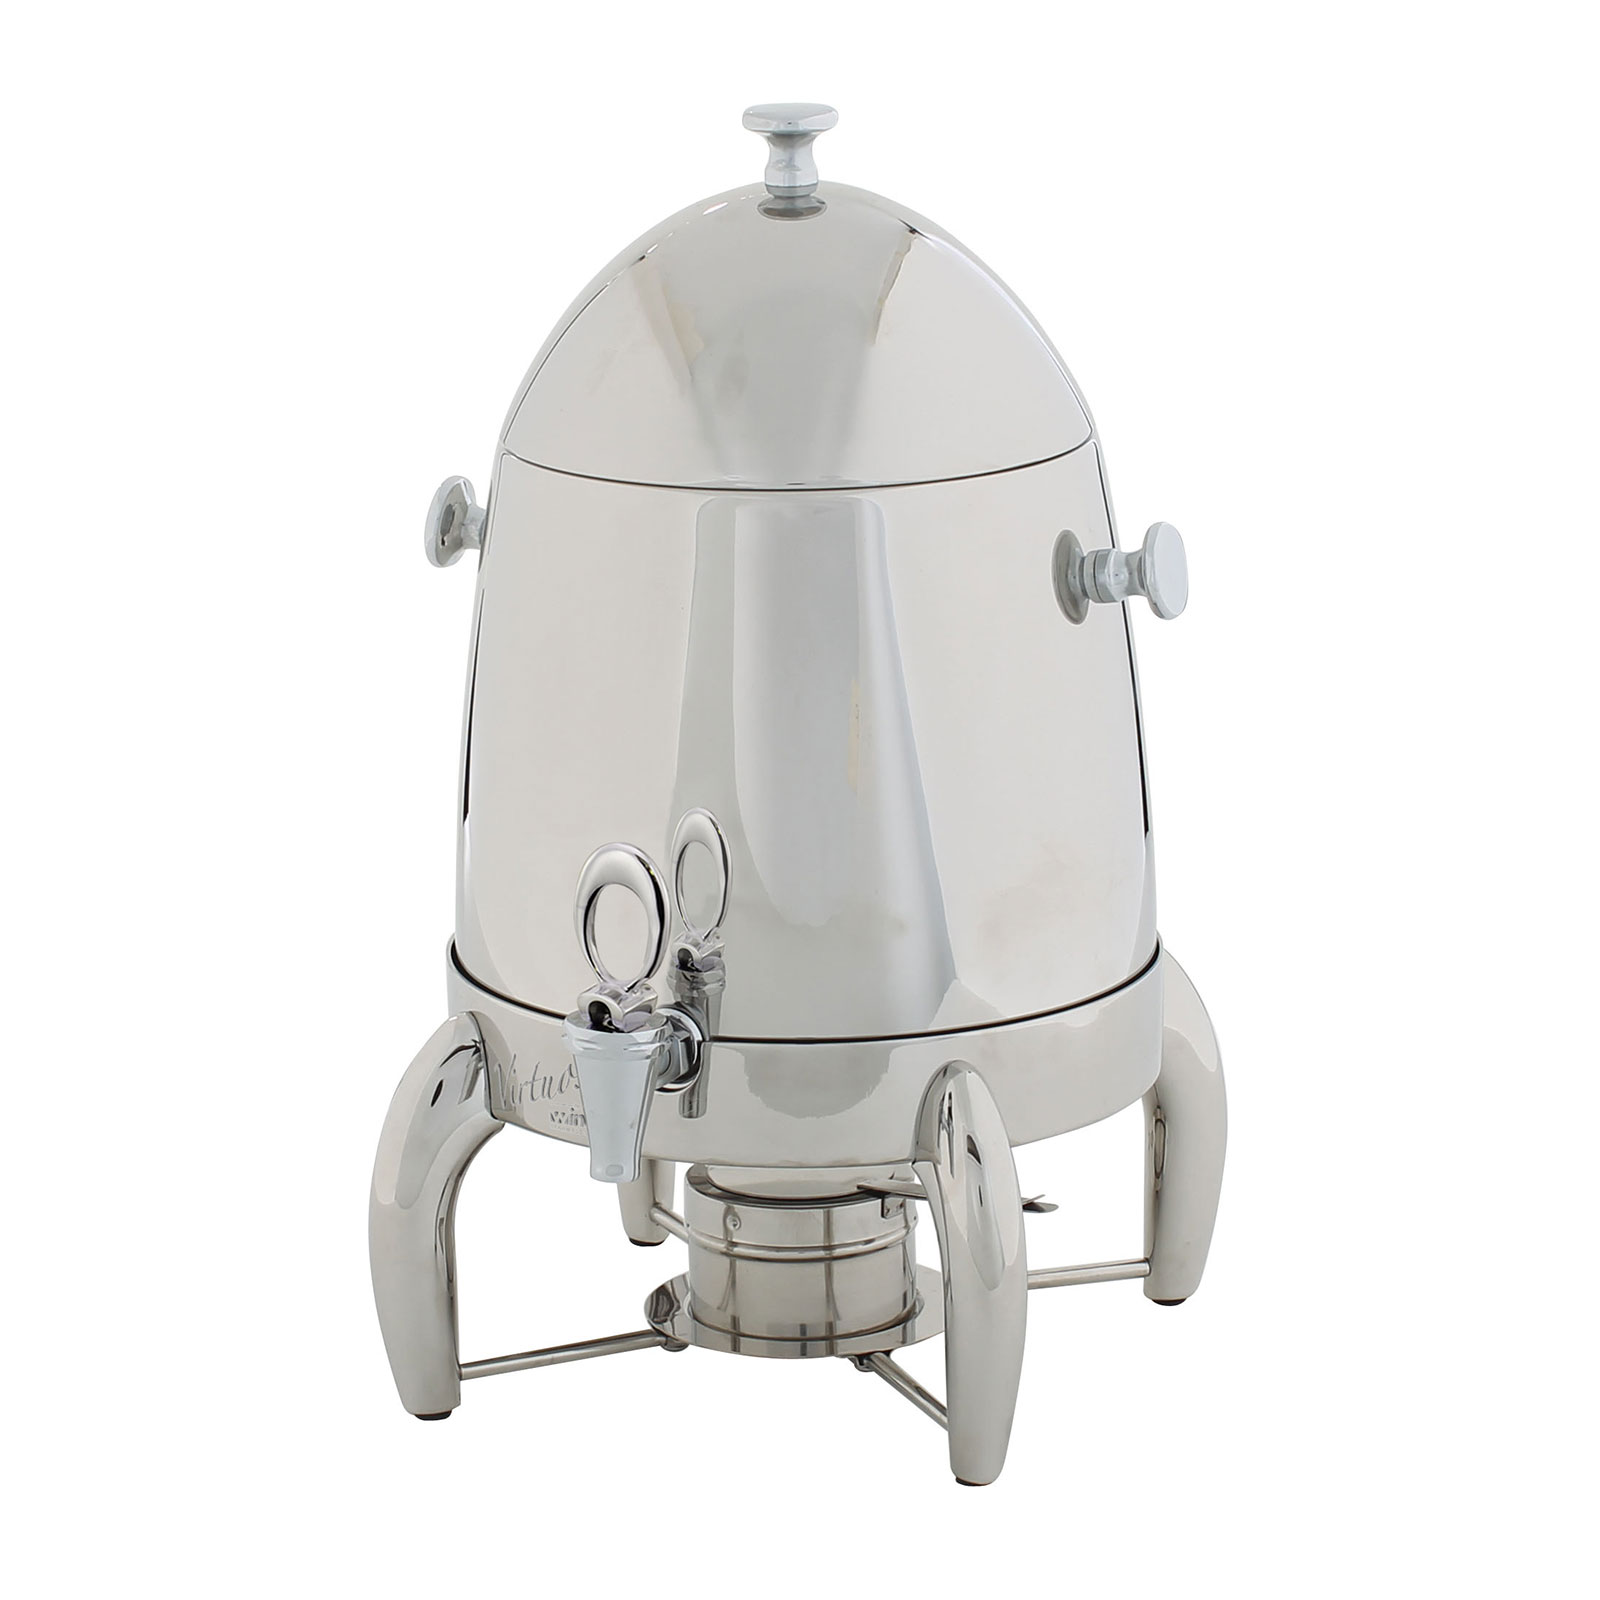 Winco 903B coffee chafer urn